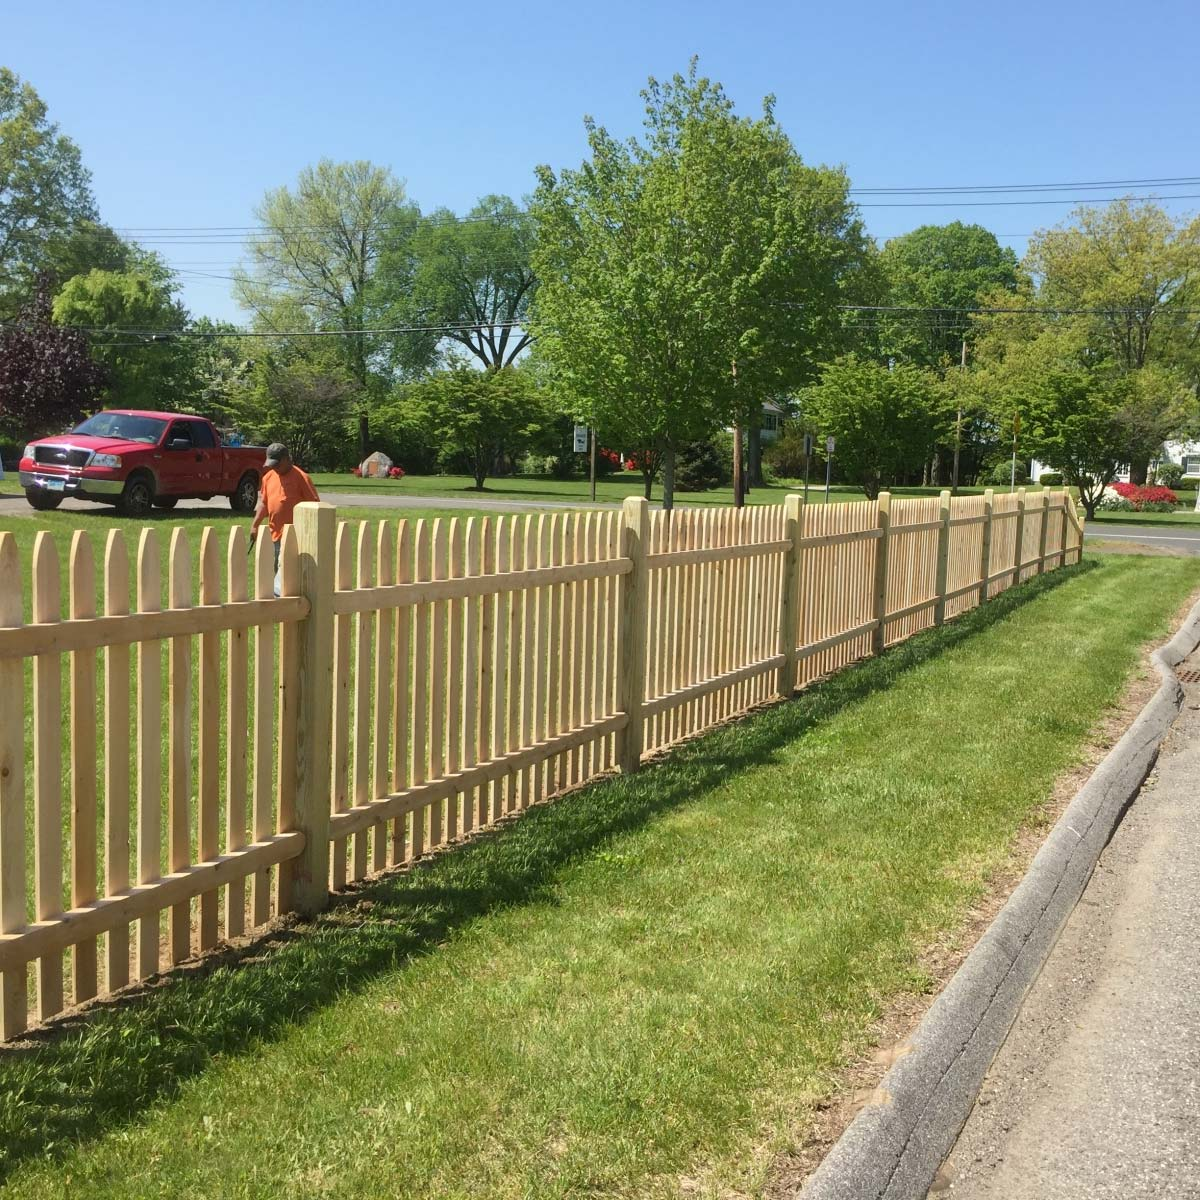 https://www.speedyvinylfencing.com/wp-content/uploads/2019/12/SVF-Services-Wood.jpg